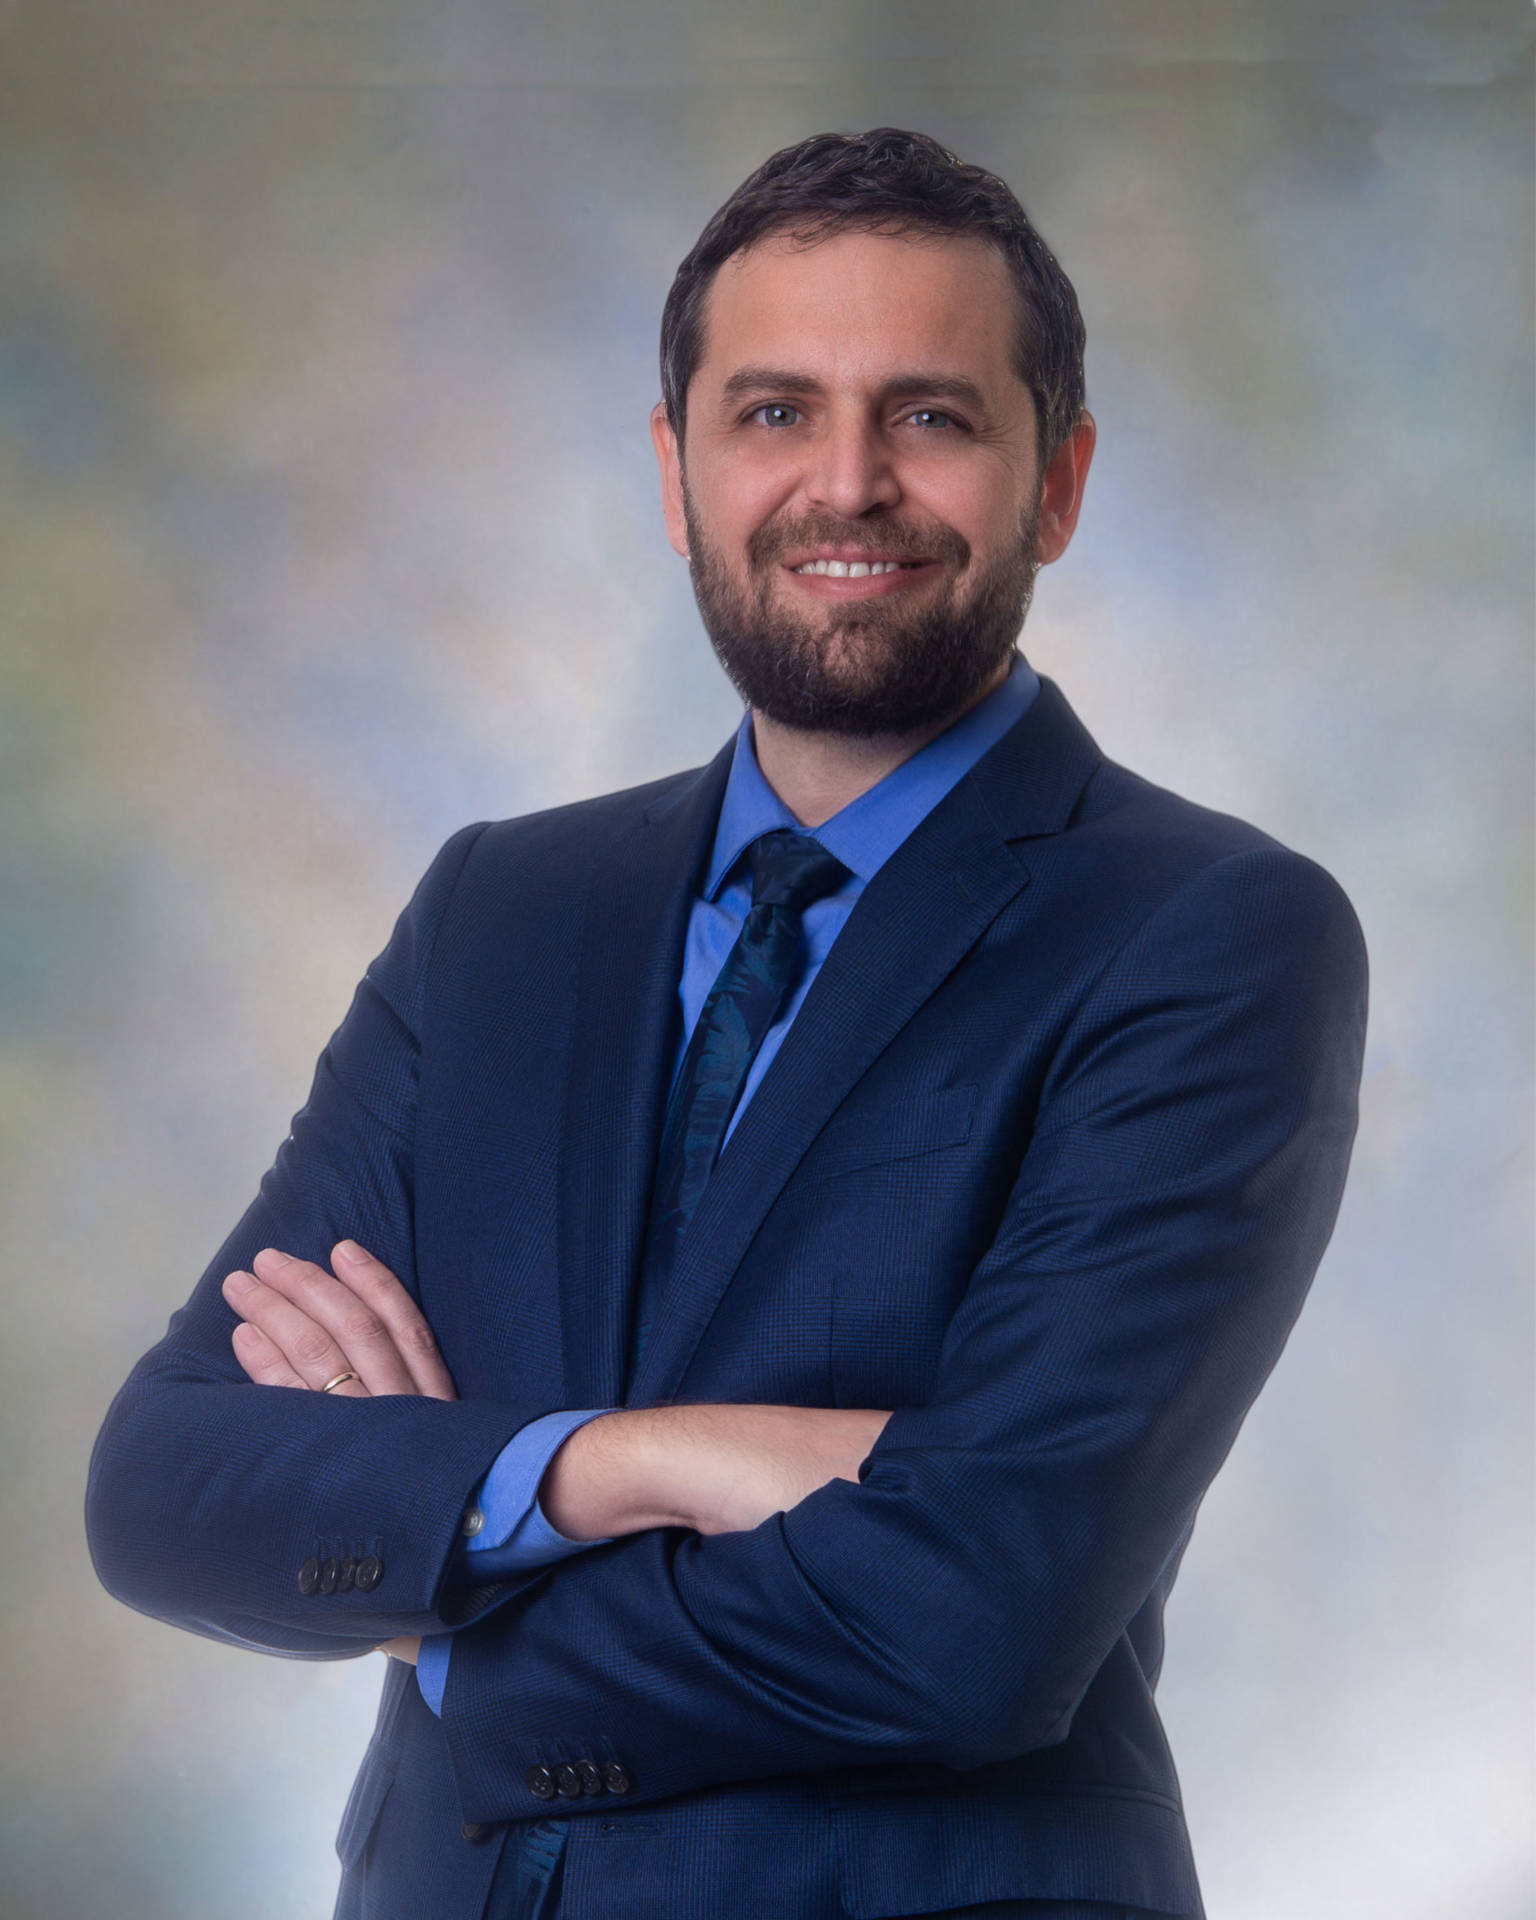 Justin Attorney At Law with custom pastel background, blue suit and shirt dark blue tie